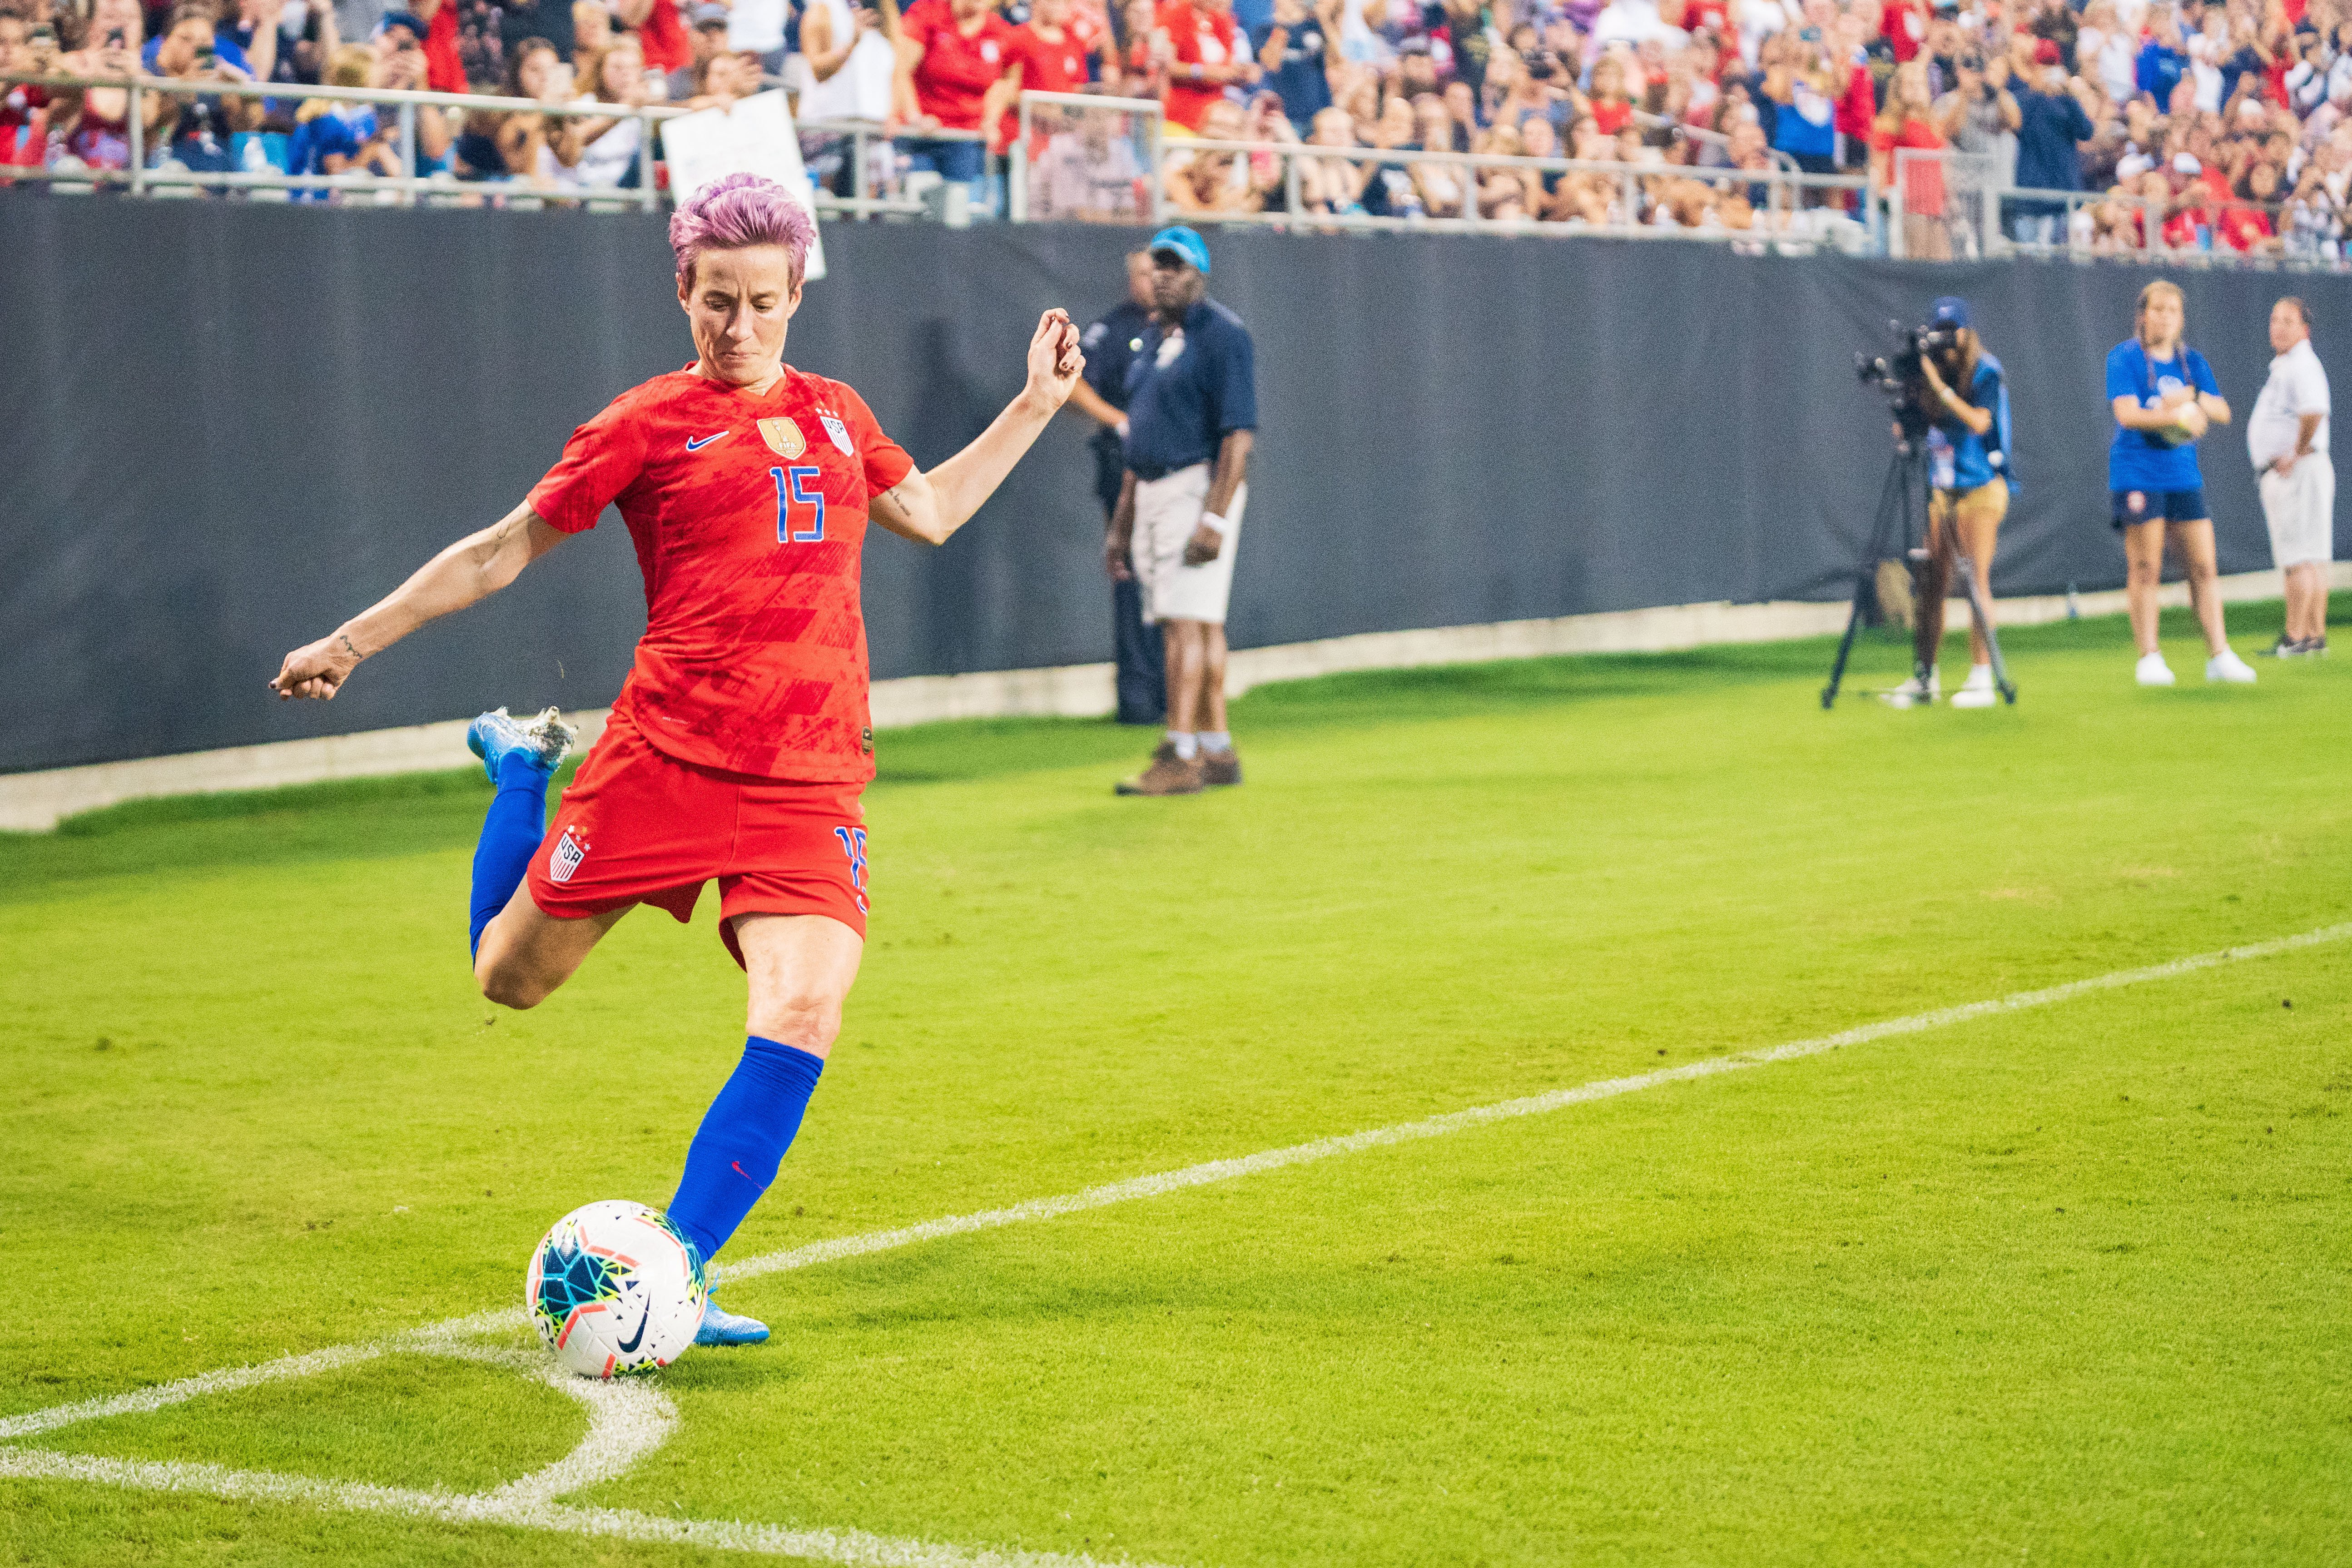 Thanksgiving special: The year of US soccer star Megan Rapinoe